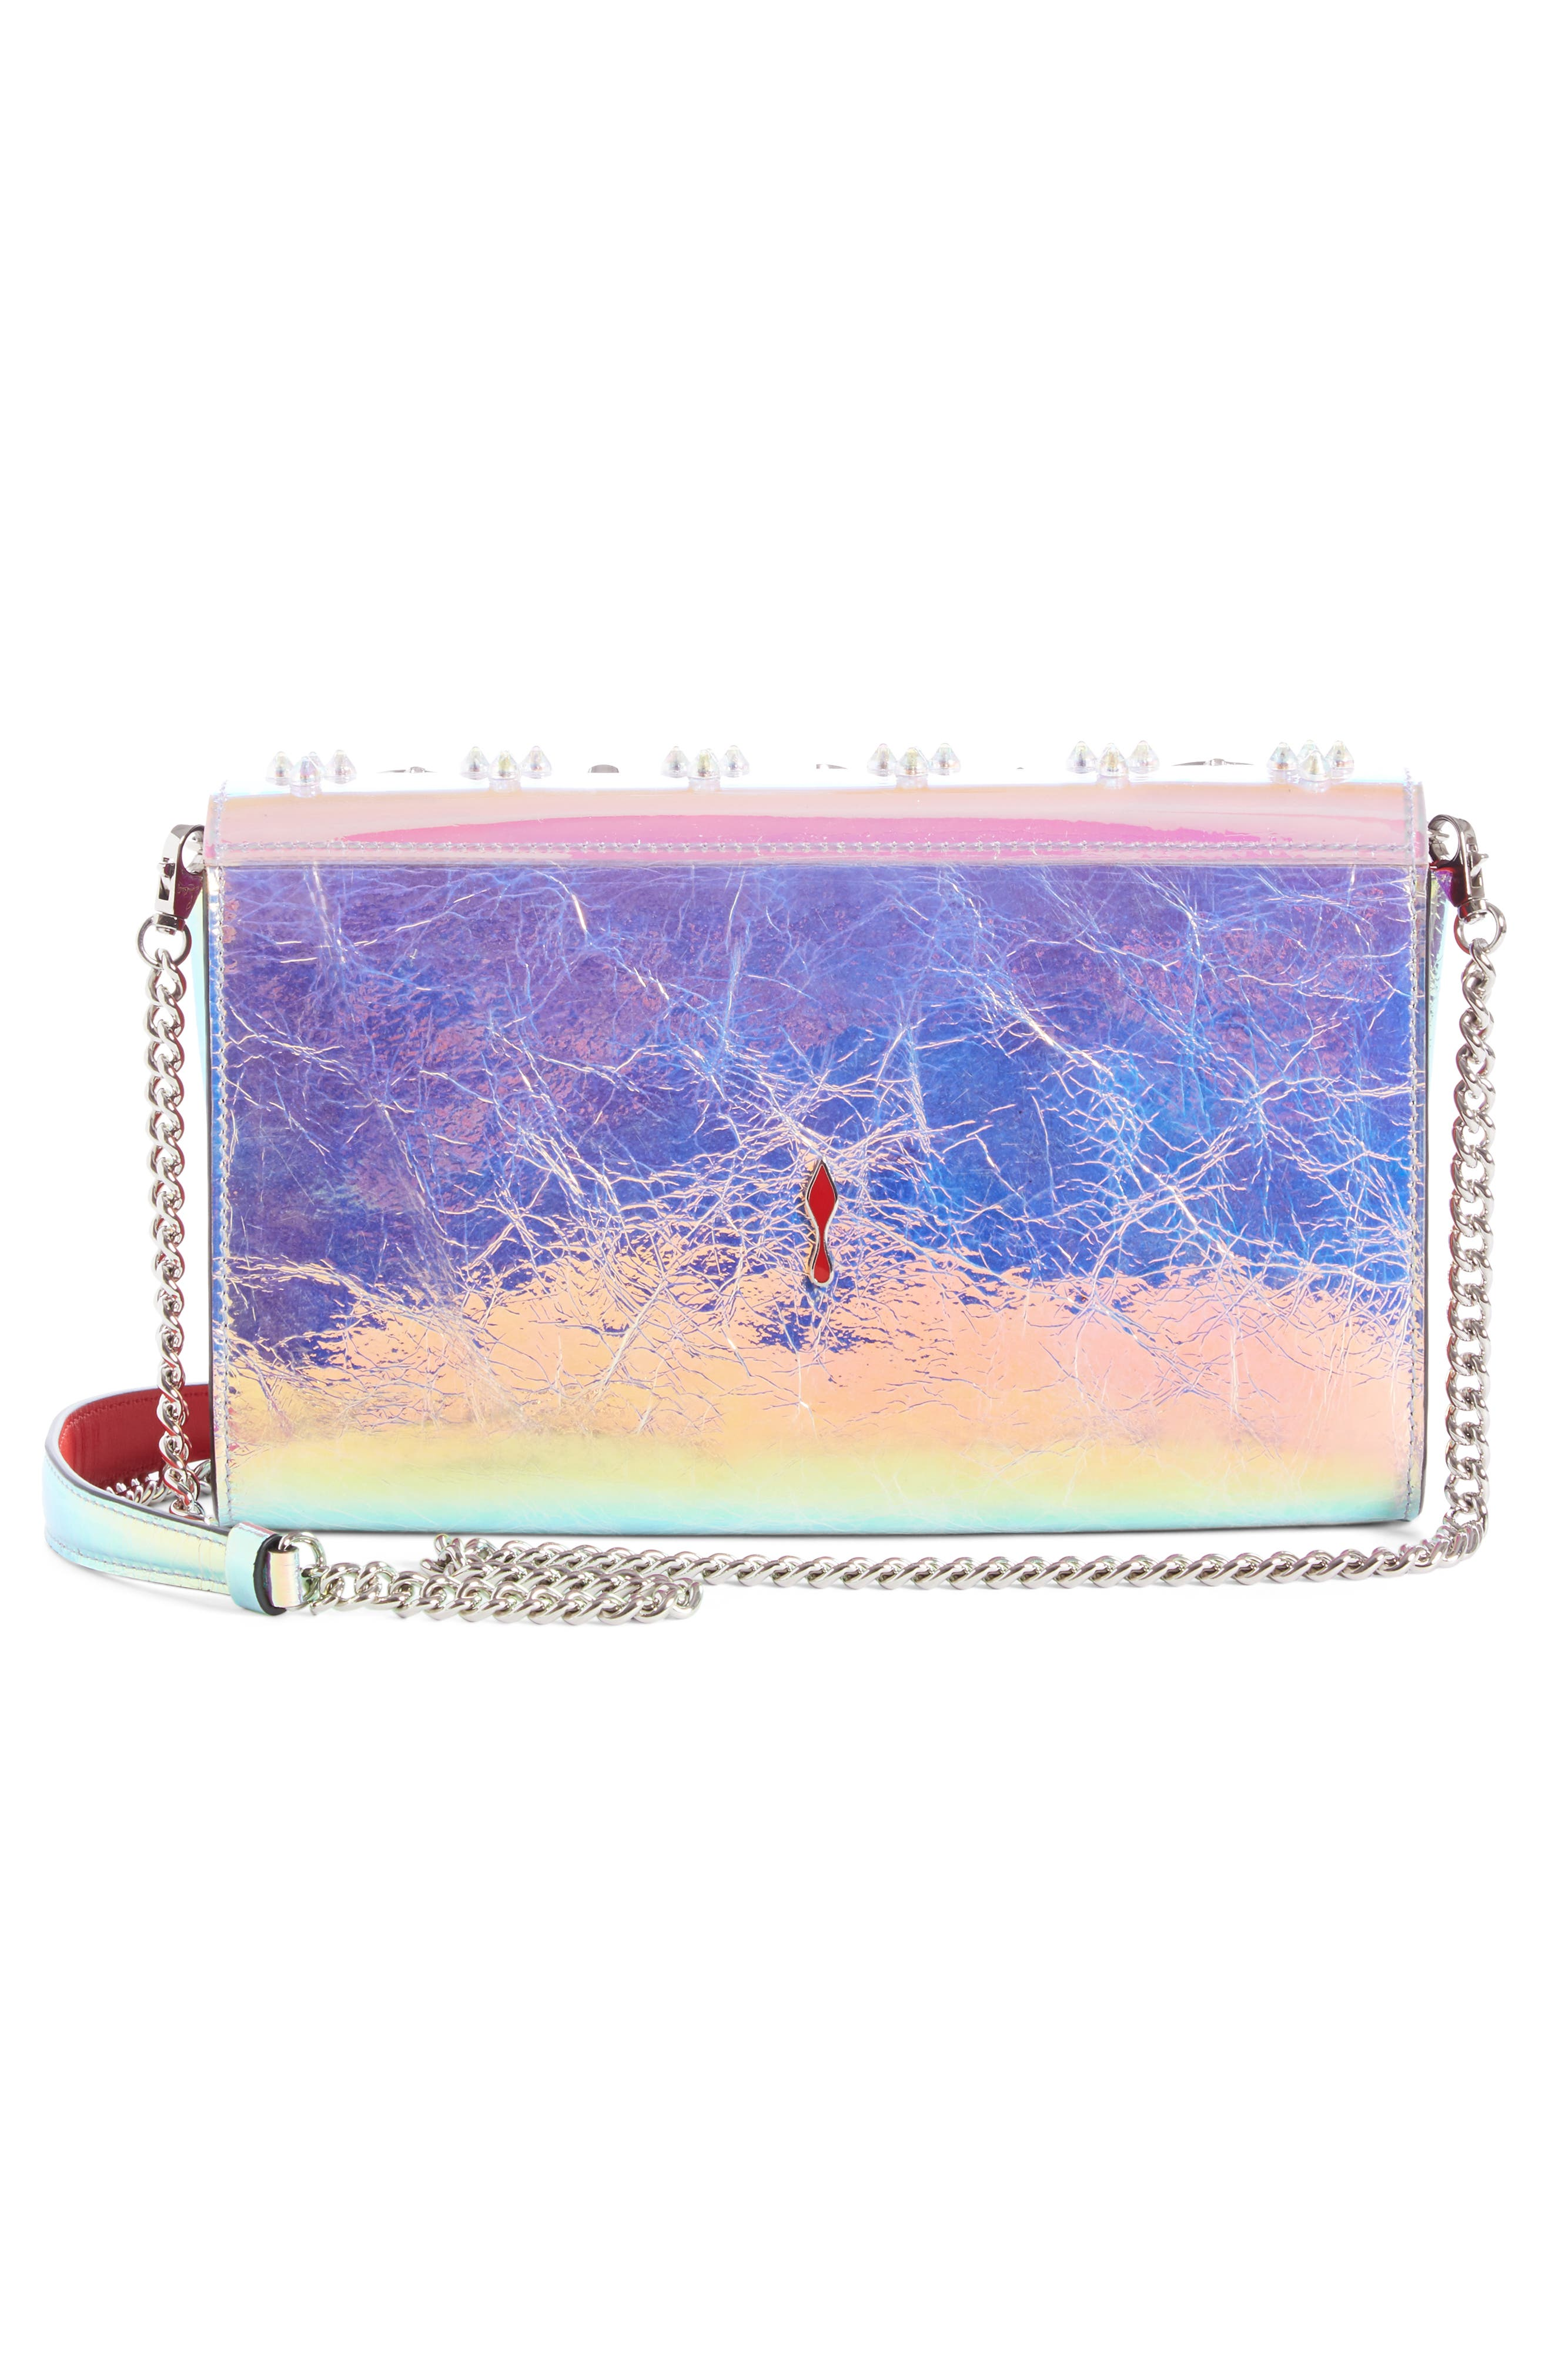 Paloma Loubisky Studded Leather Clutch,                             Alternate thumbnail 2, color,                             MULTI AB